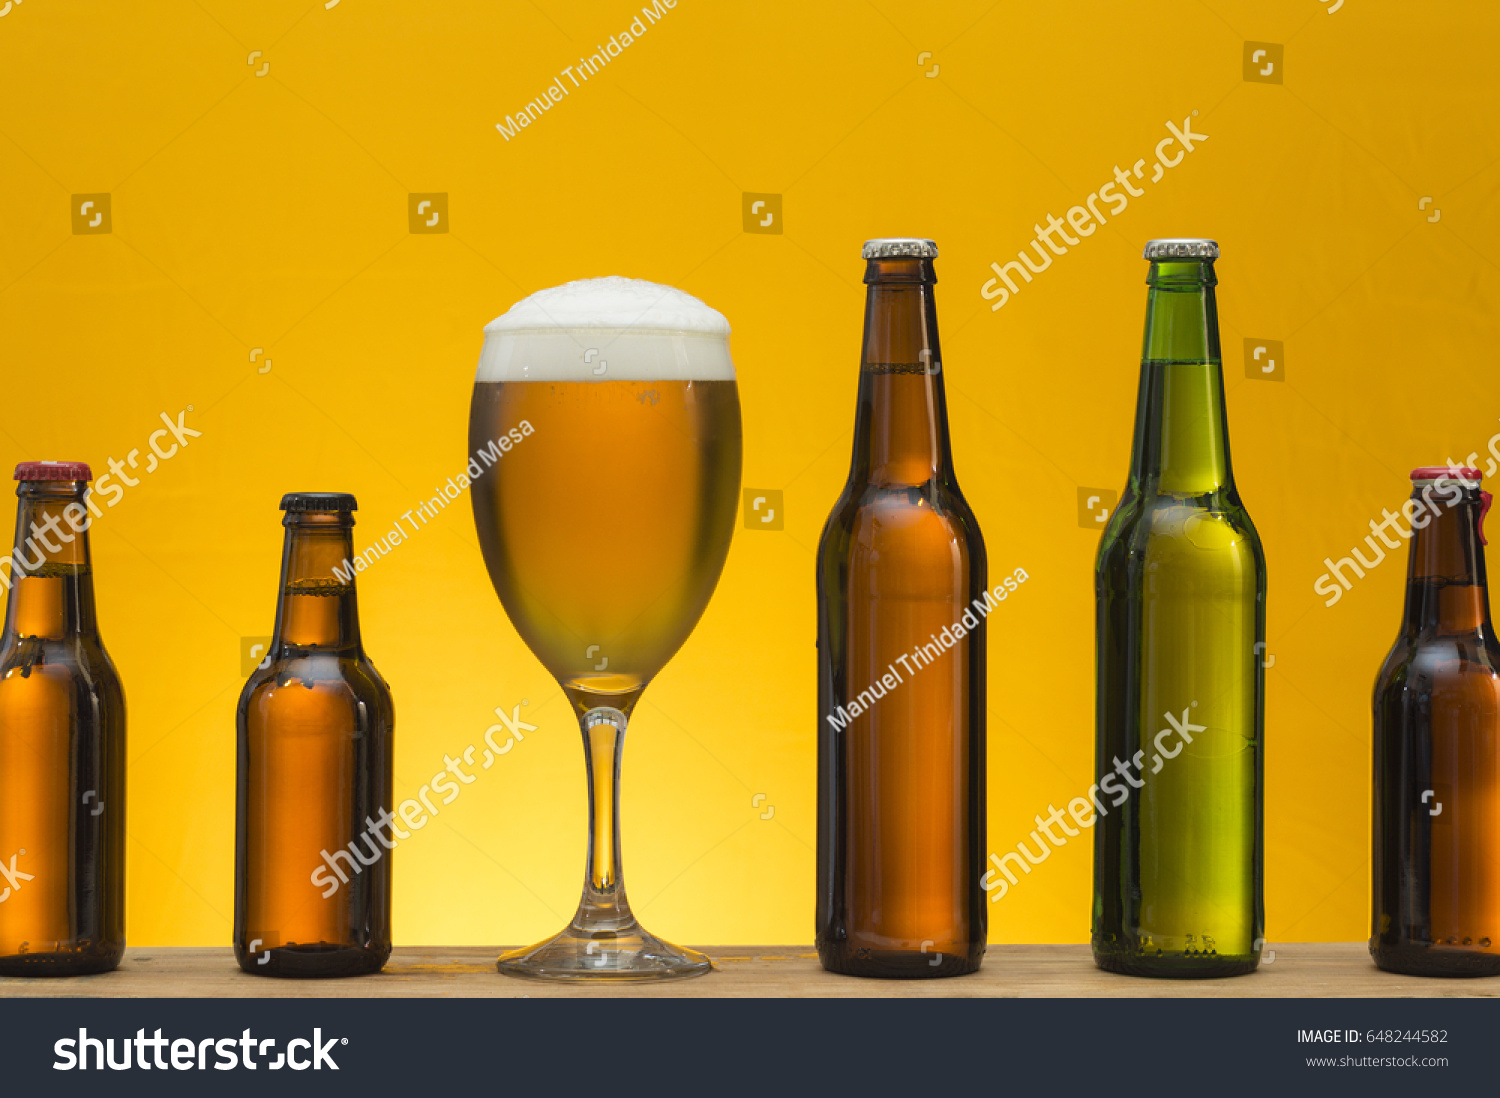 stock-photo-various-bottles-with-differe